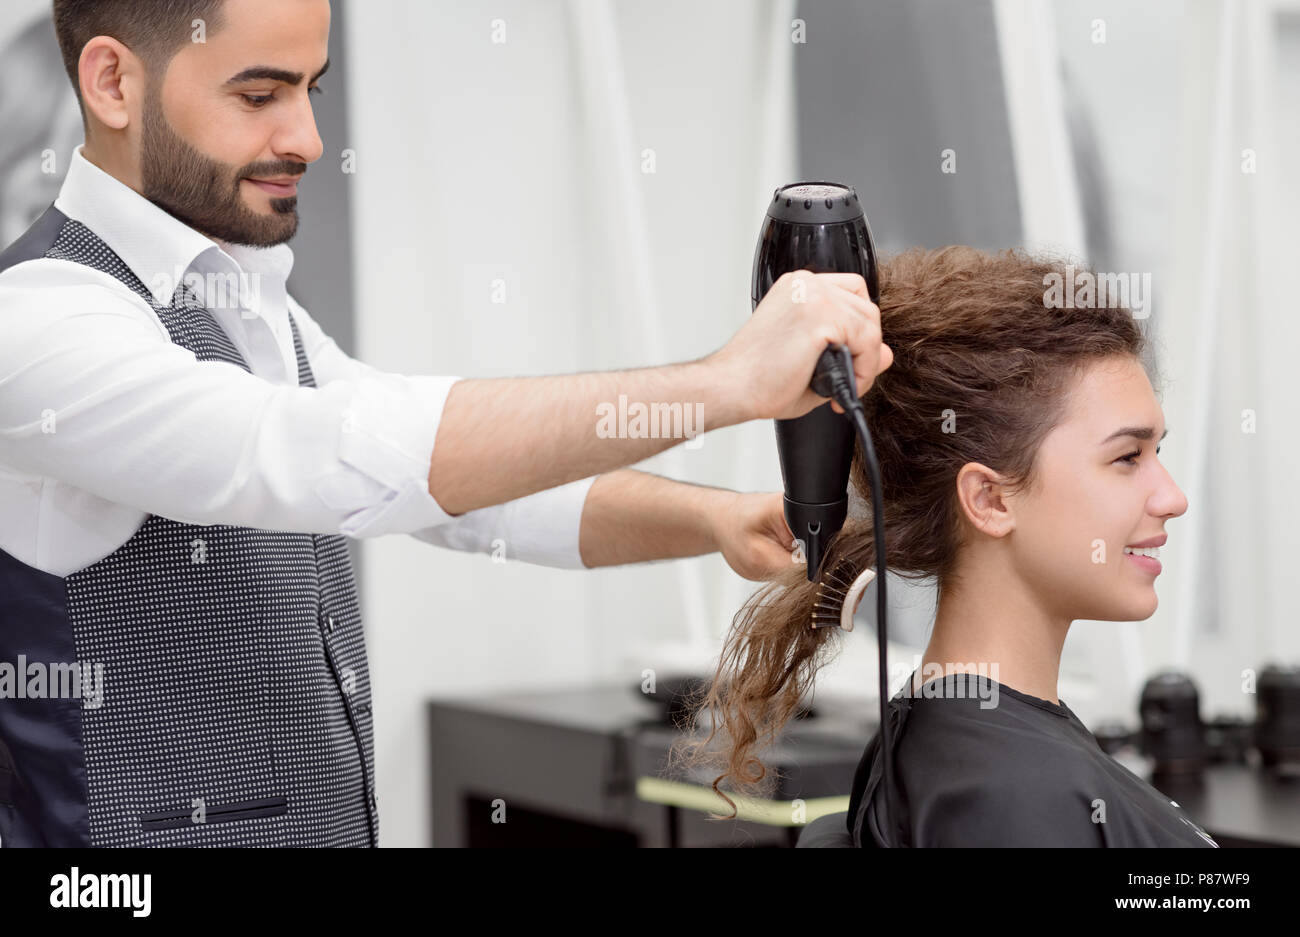 Sideview of Arabian hairstyler drying smiling female client's curly hair. Blurred reflection in big mirror. Using plastic brush and hair dryer. Wearin - Stock Image